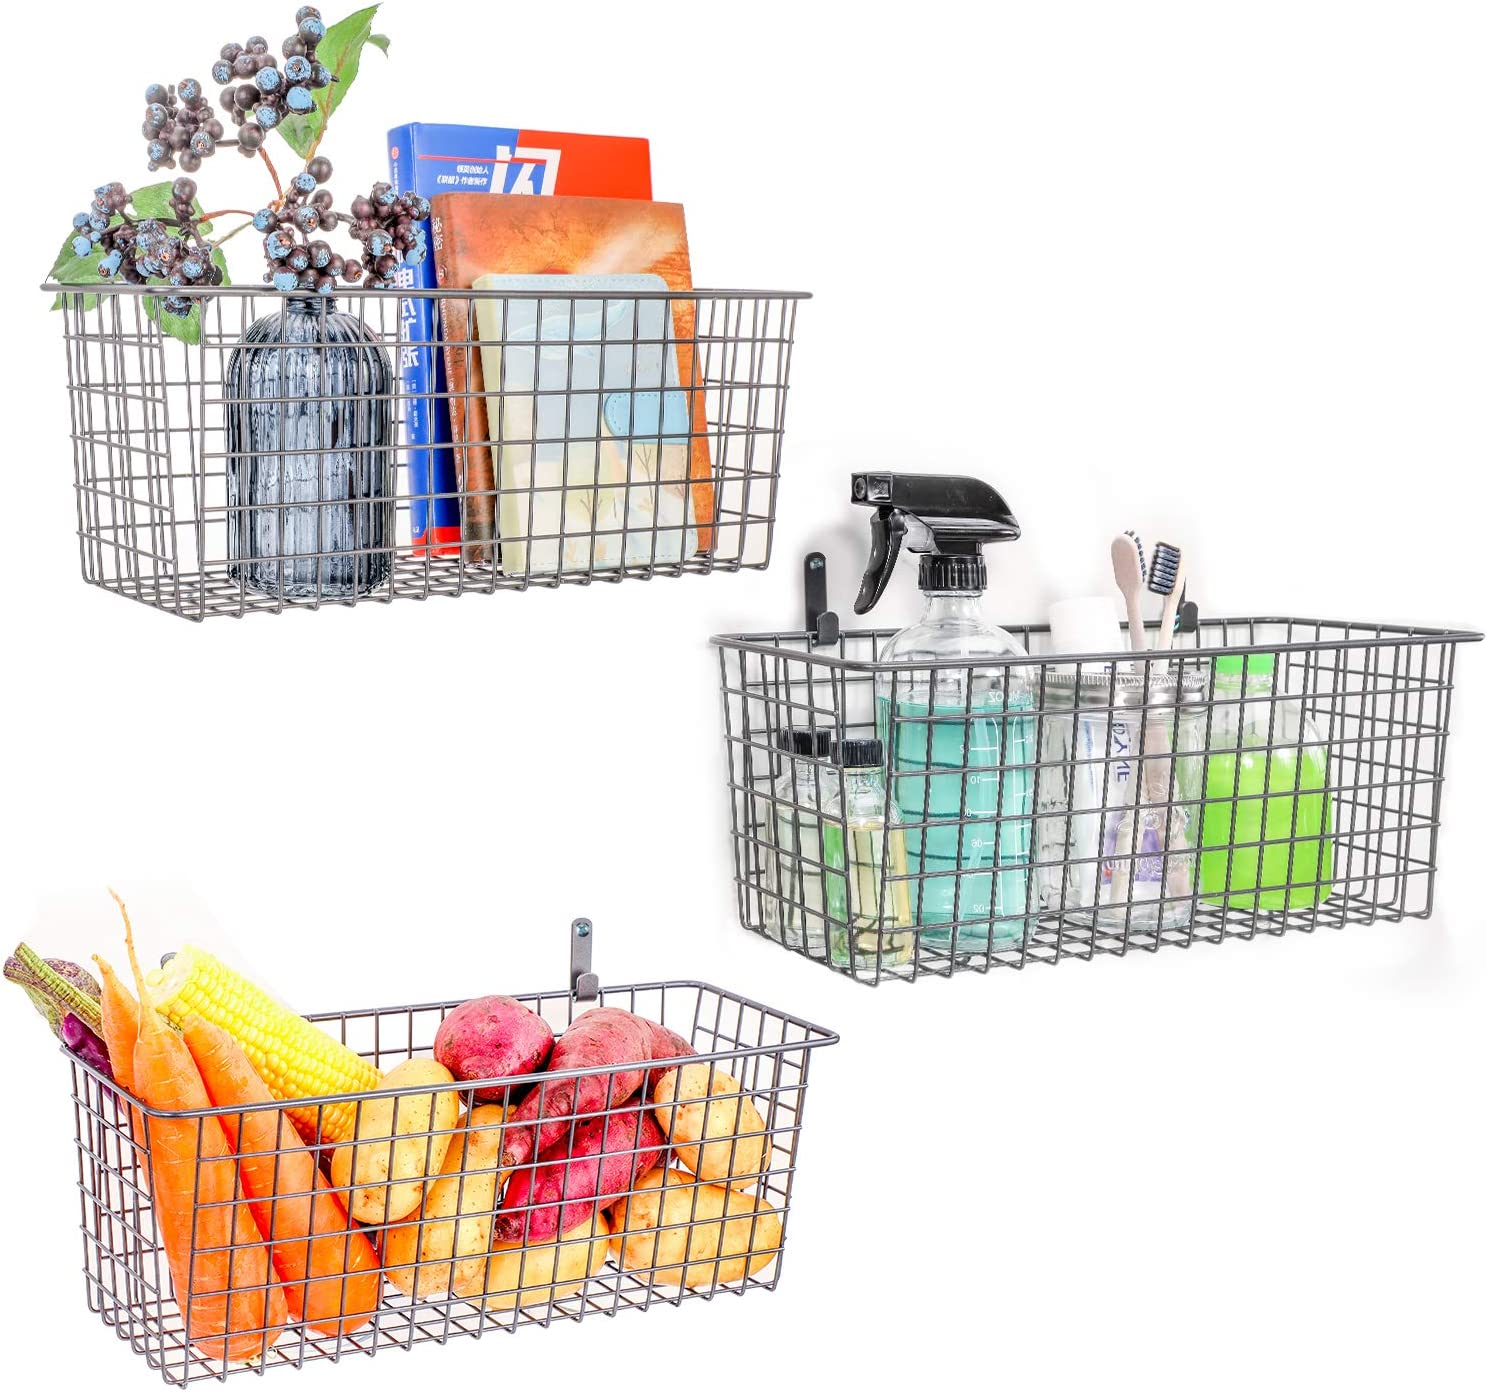 3 Set Extra Large Wall Basket for Storage, Wall Mount Sturdy Steel Wire Baskets, Metal Hanging Cabinet Bin for Organization, Rustic Farmhouse Decor, Kitchen Bathroom Accessories, Industrial Gray